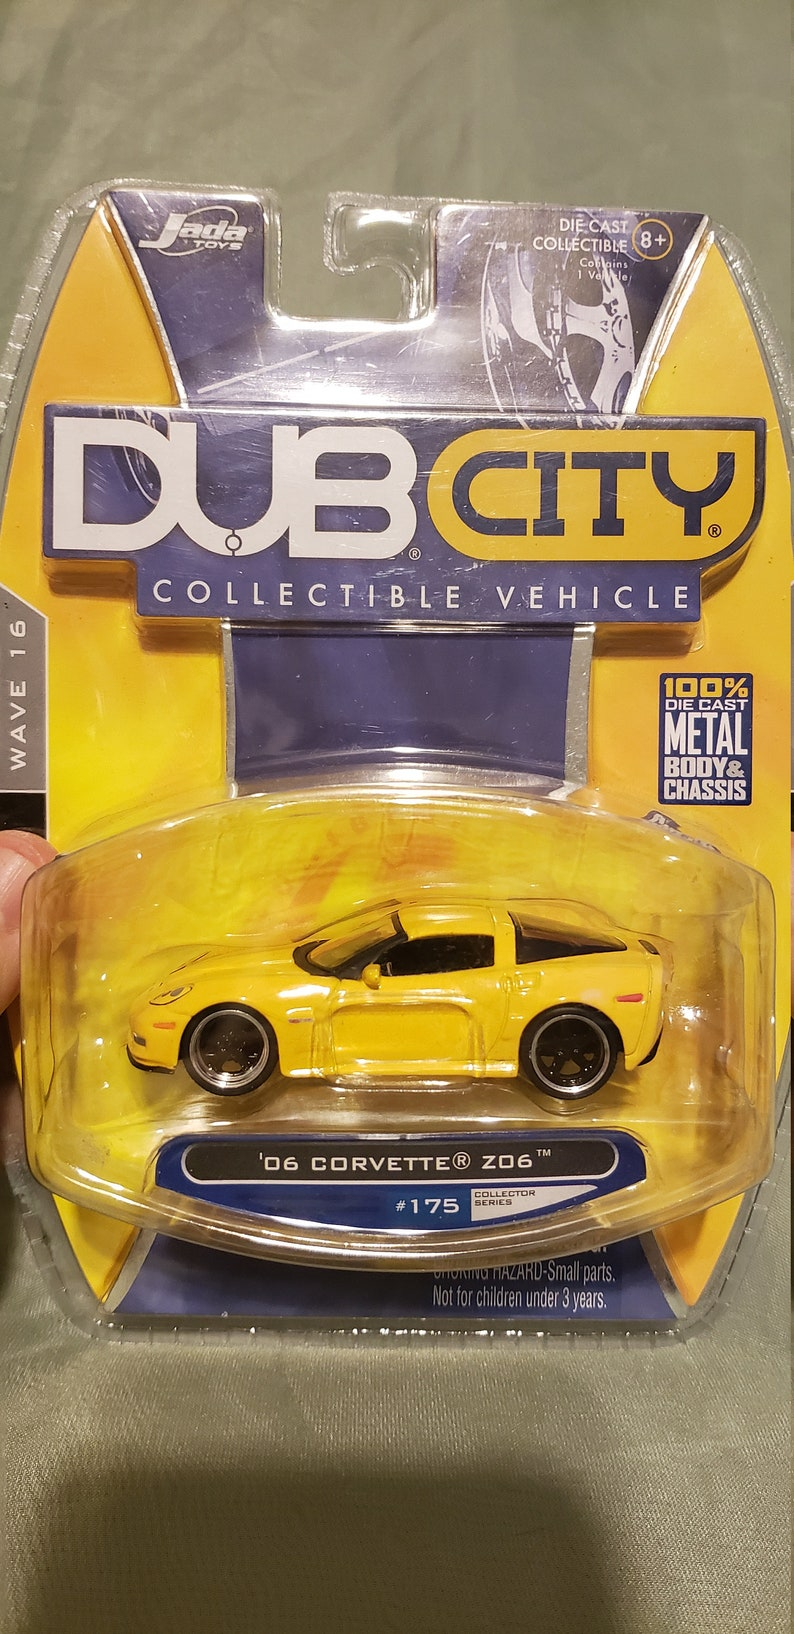 Dub City Collectible Vehicle